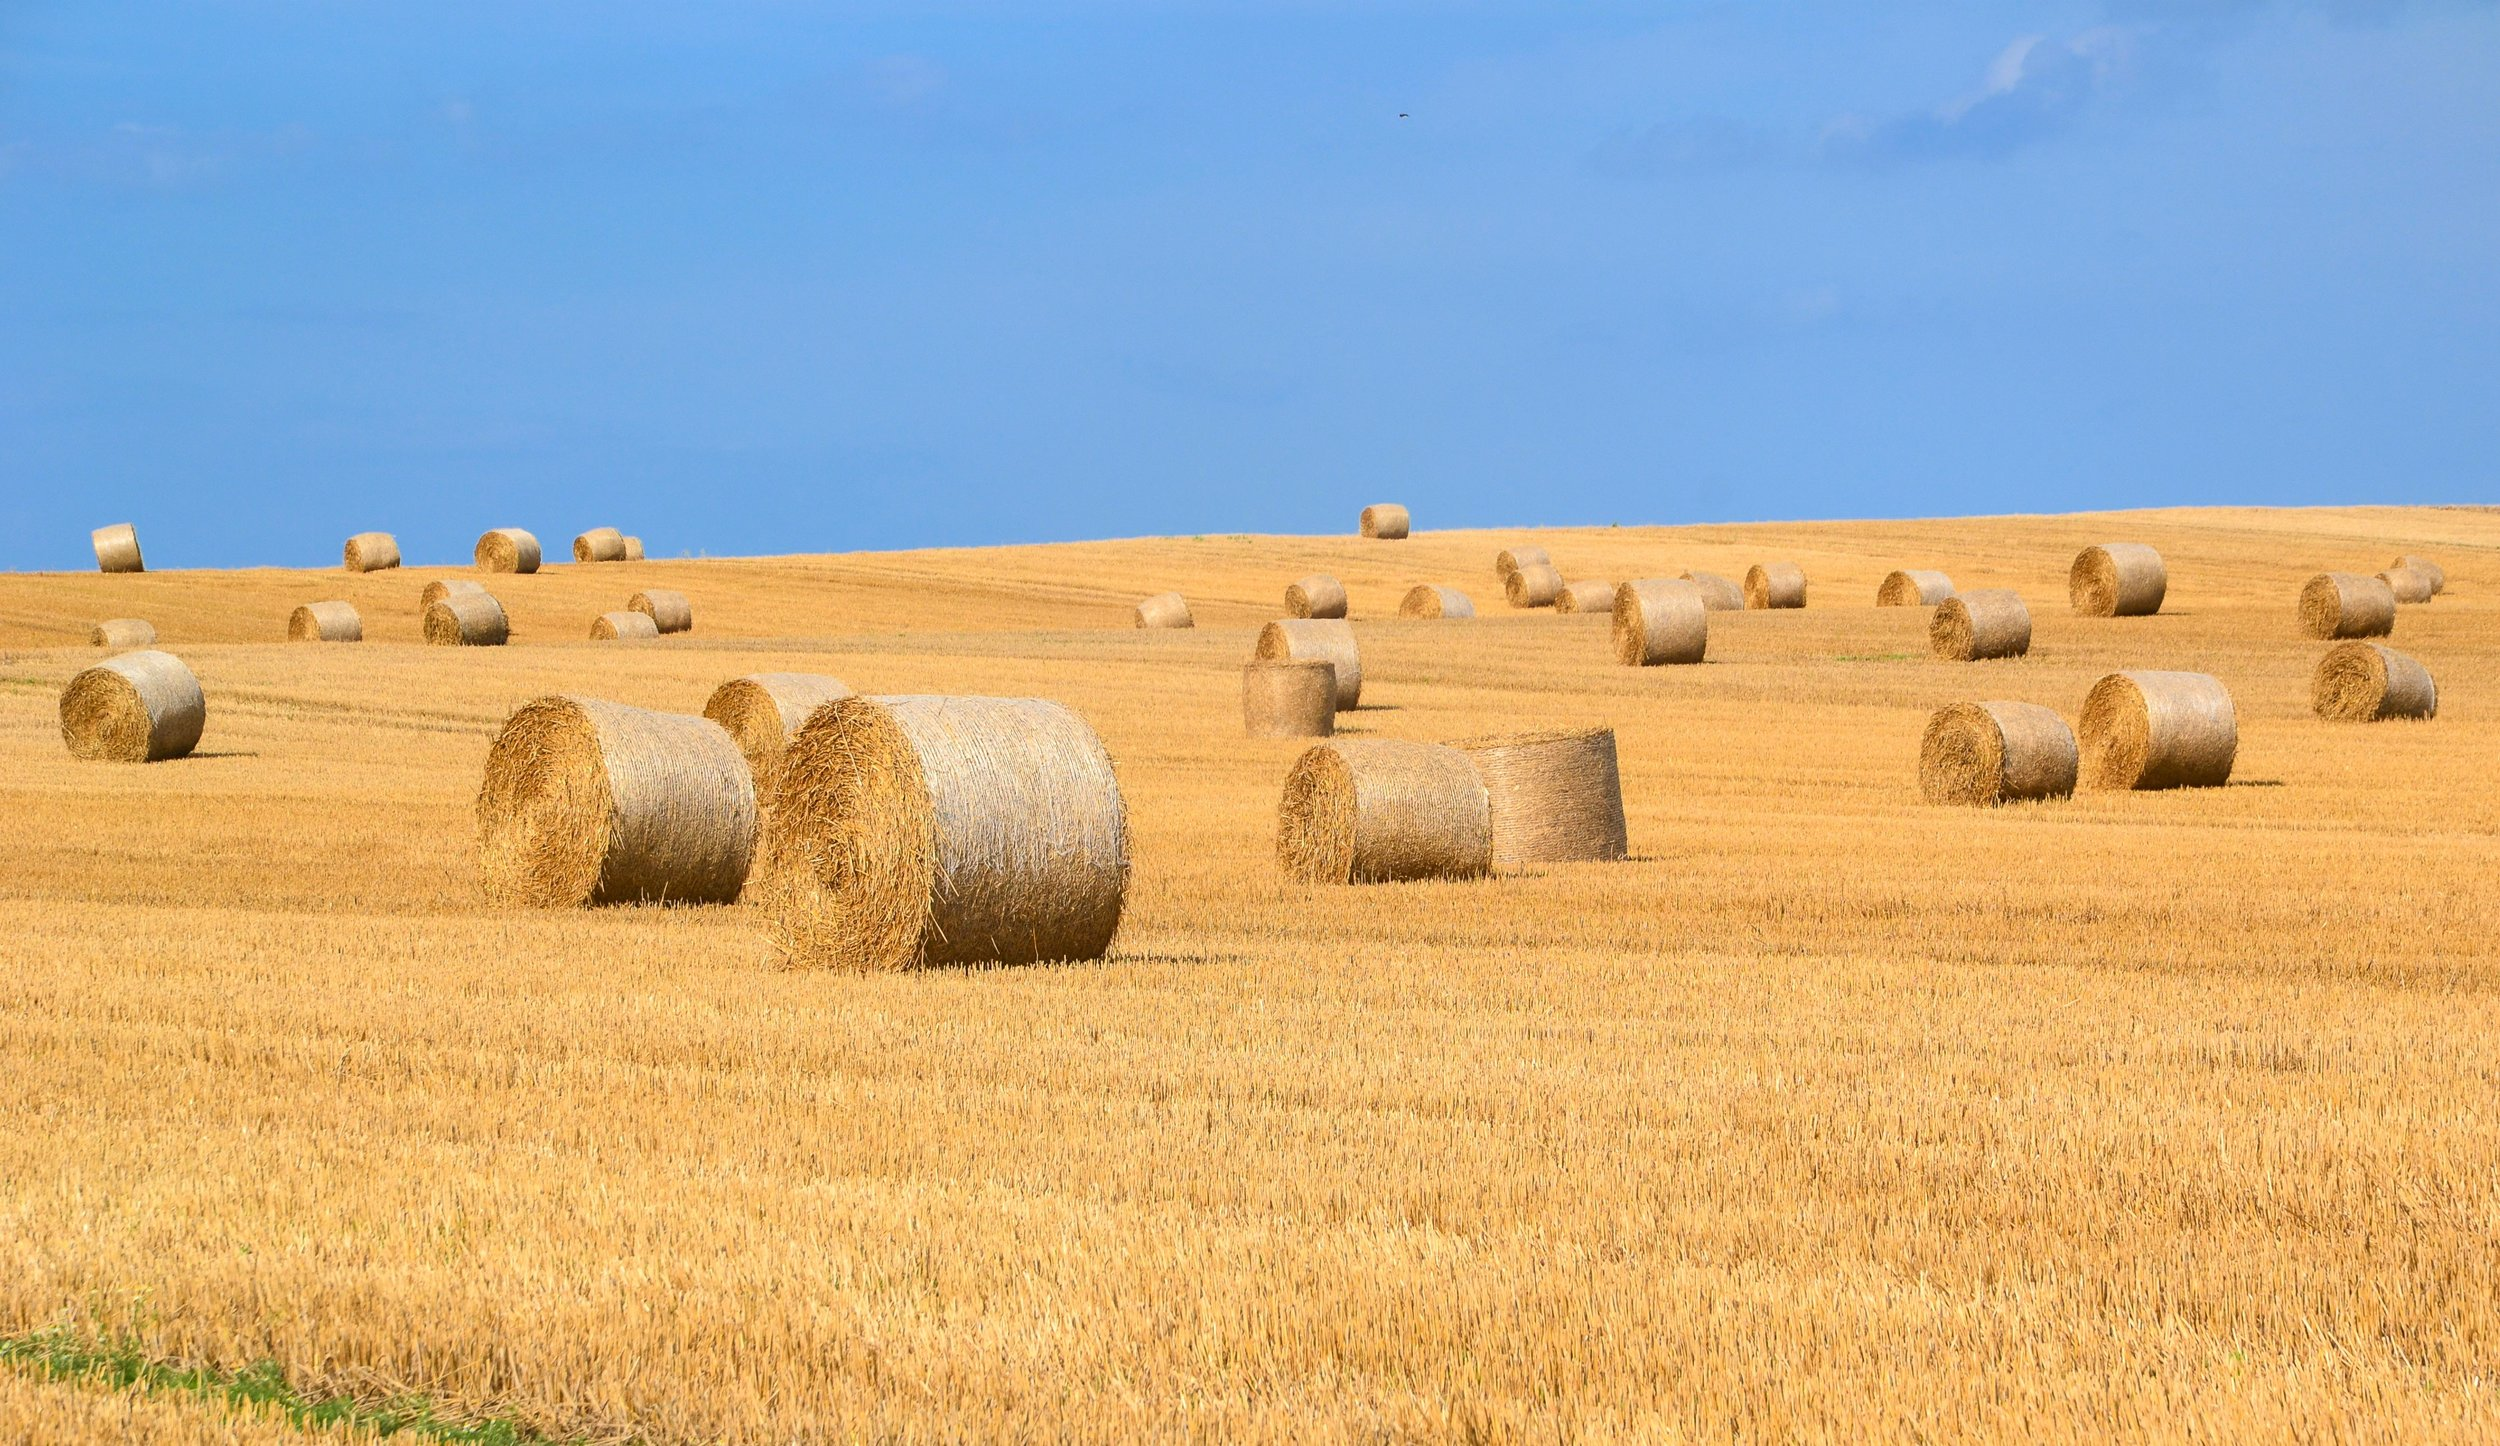 Transform your farm with digital agriculture forms and farm data